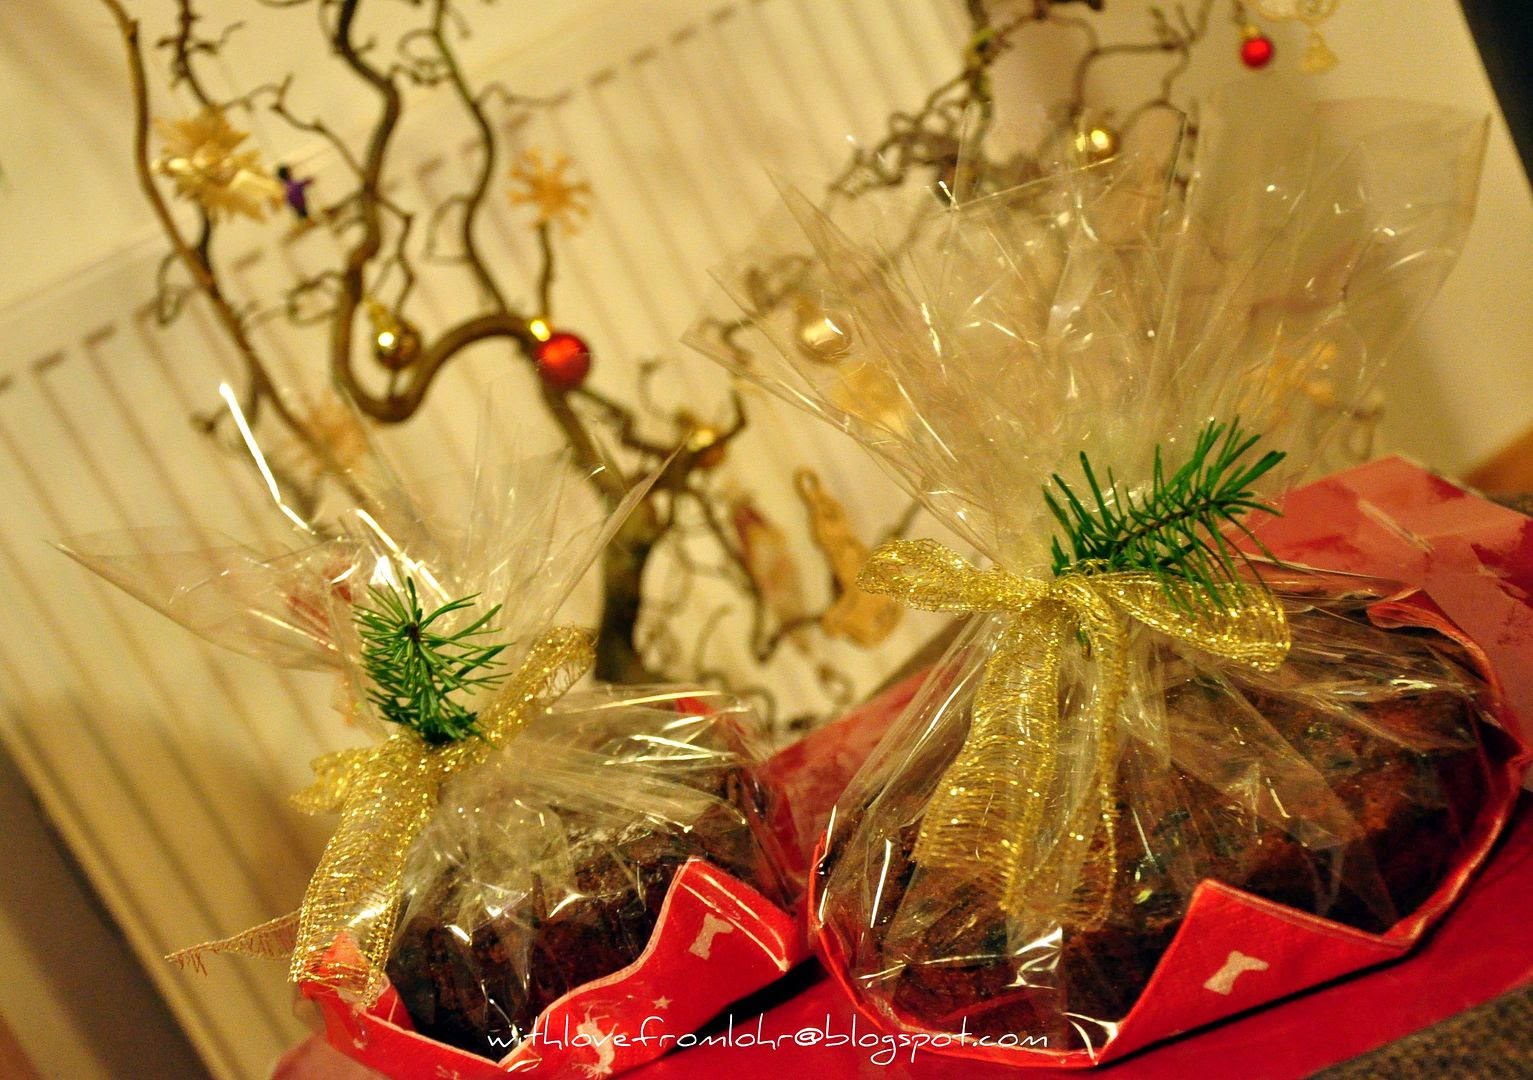 13.12.11, I have been busy baking and gifting Indian plum cakes to all my friends in Lohr.